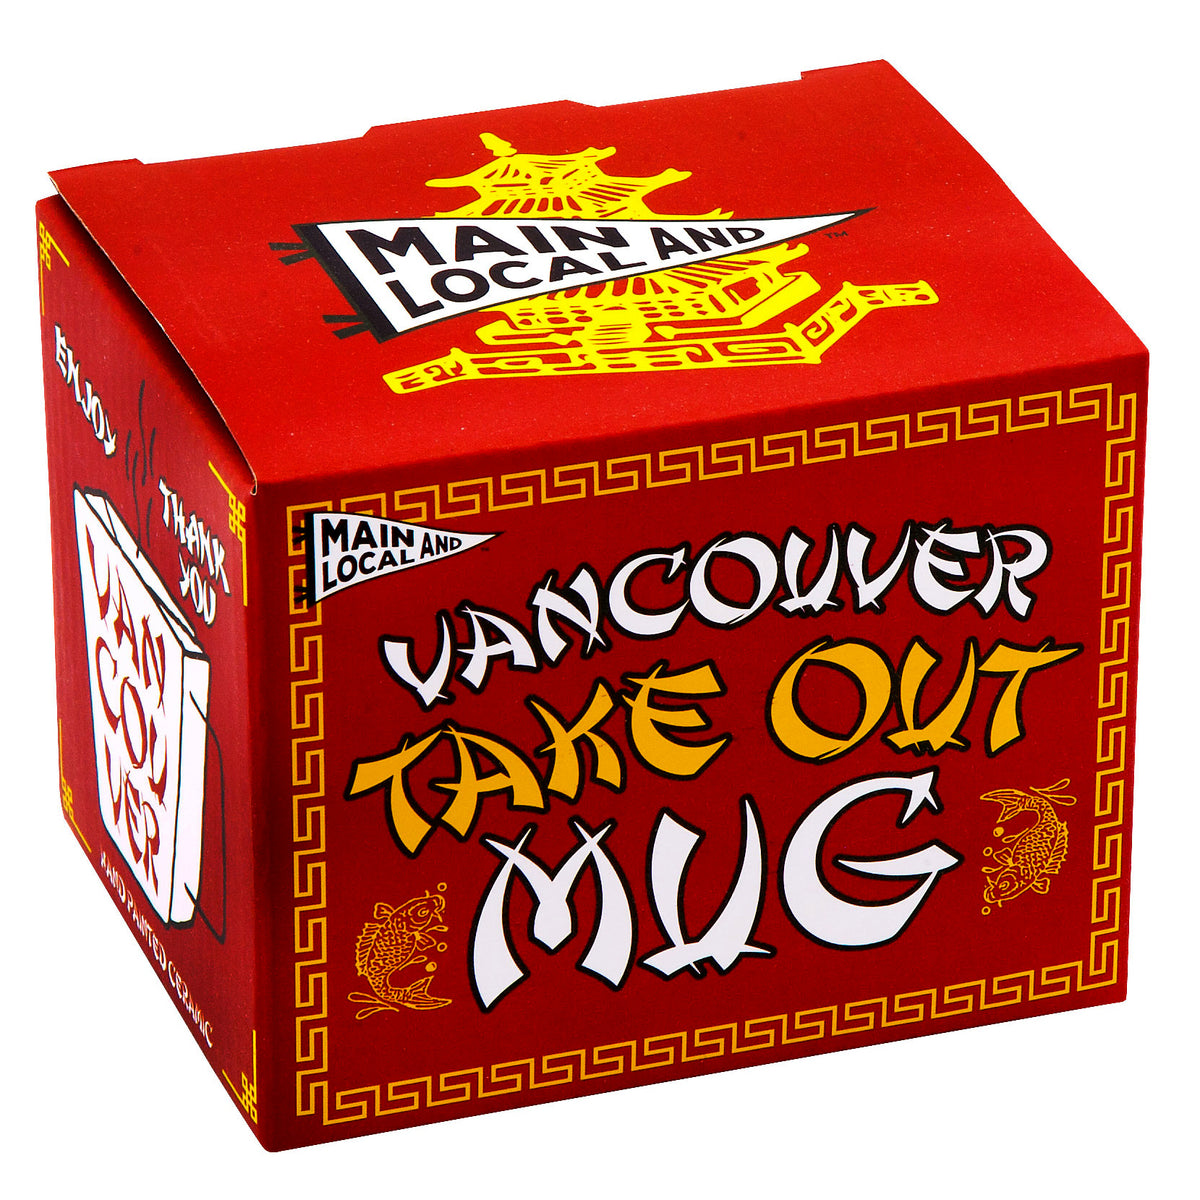 Vancouver Take Out Mug - Main and Local